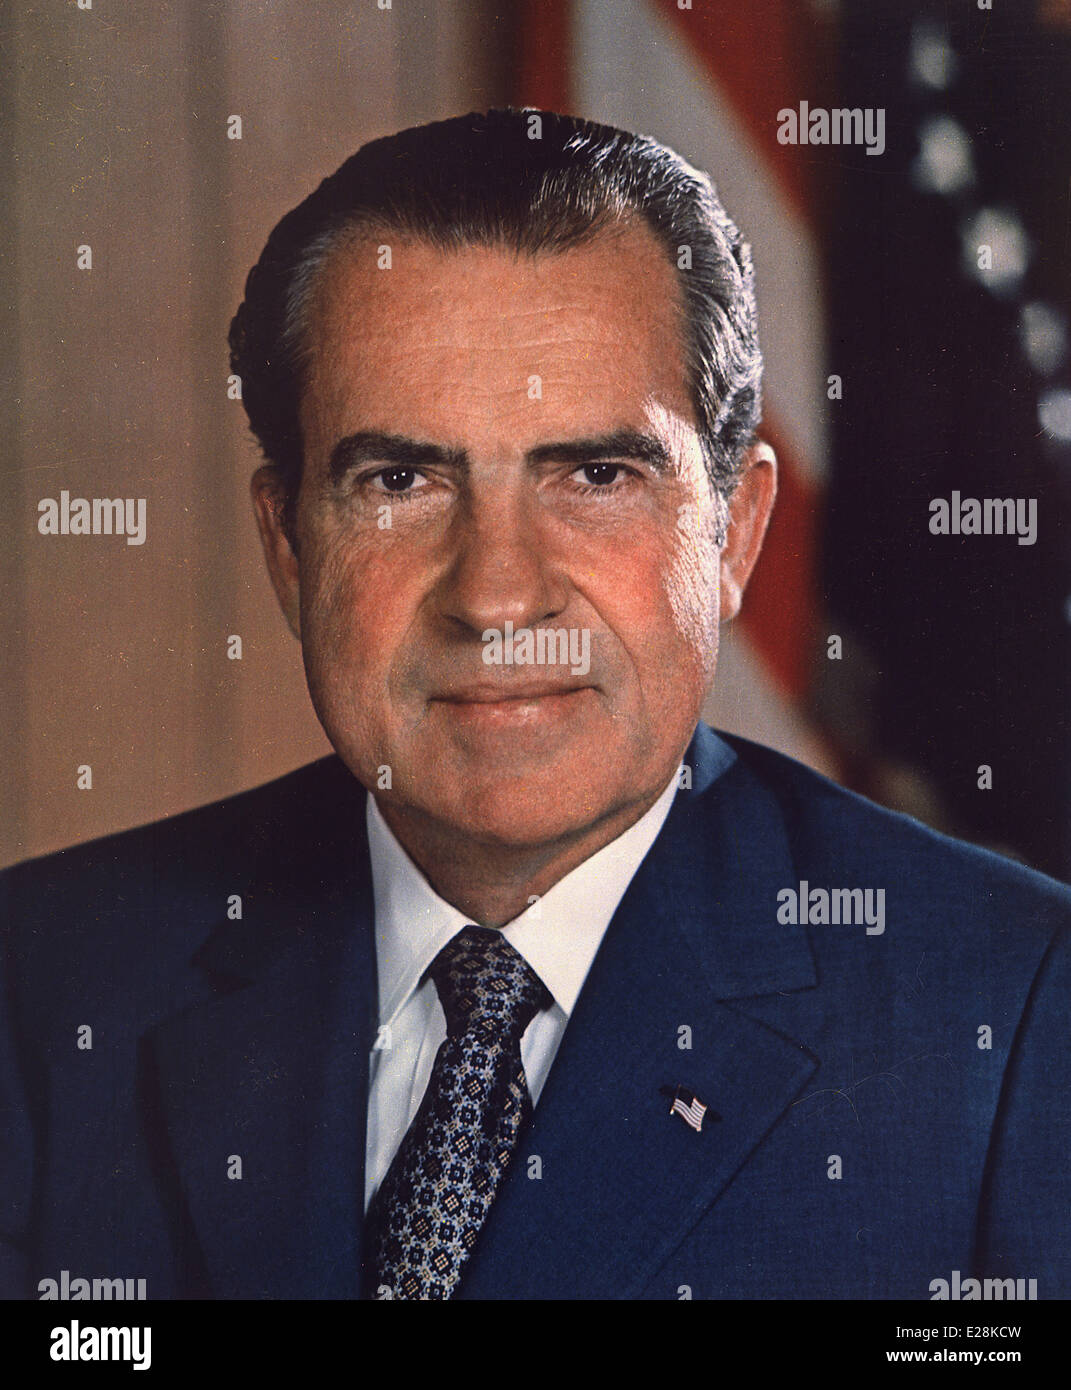 Richard Nixon, 37th President of the United States - Stock Image